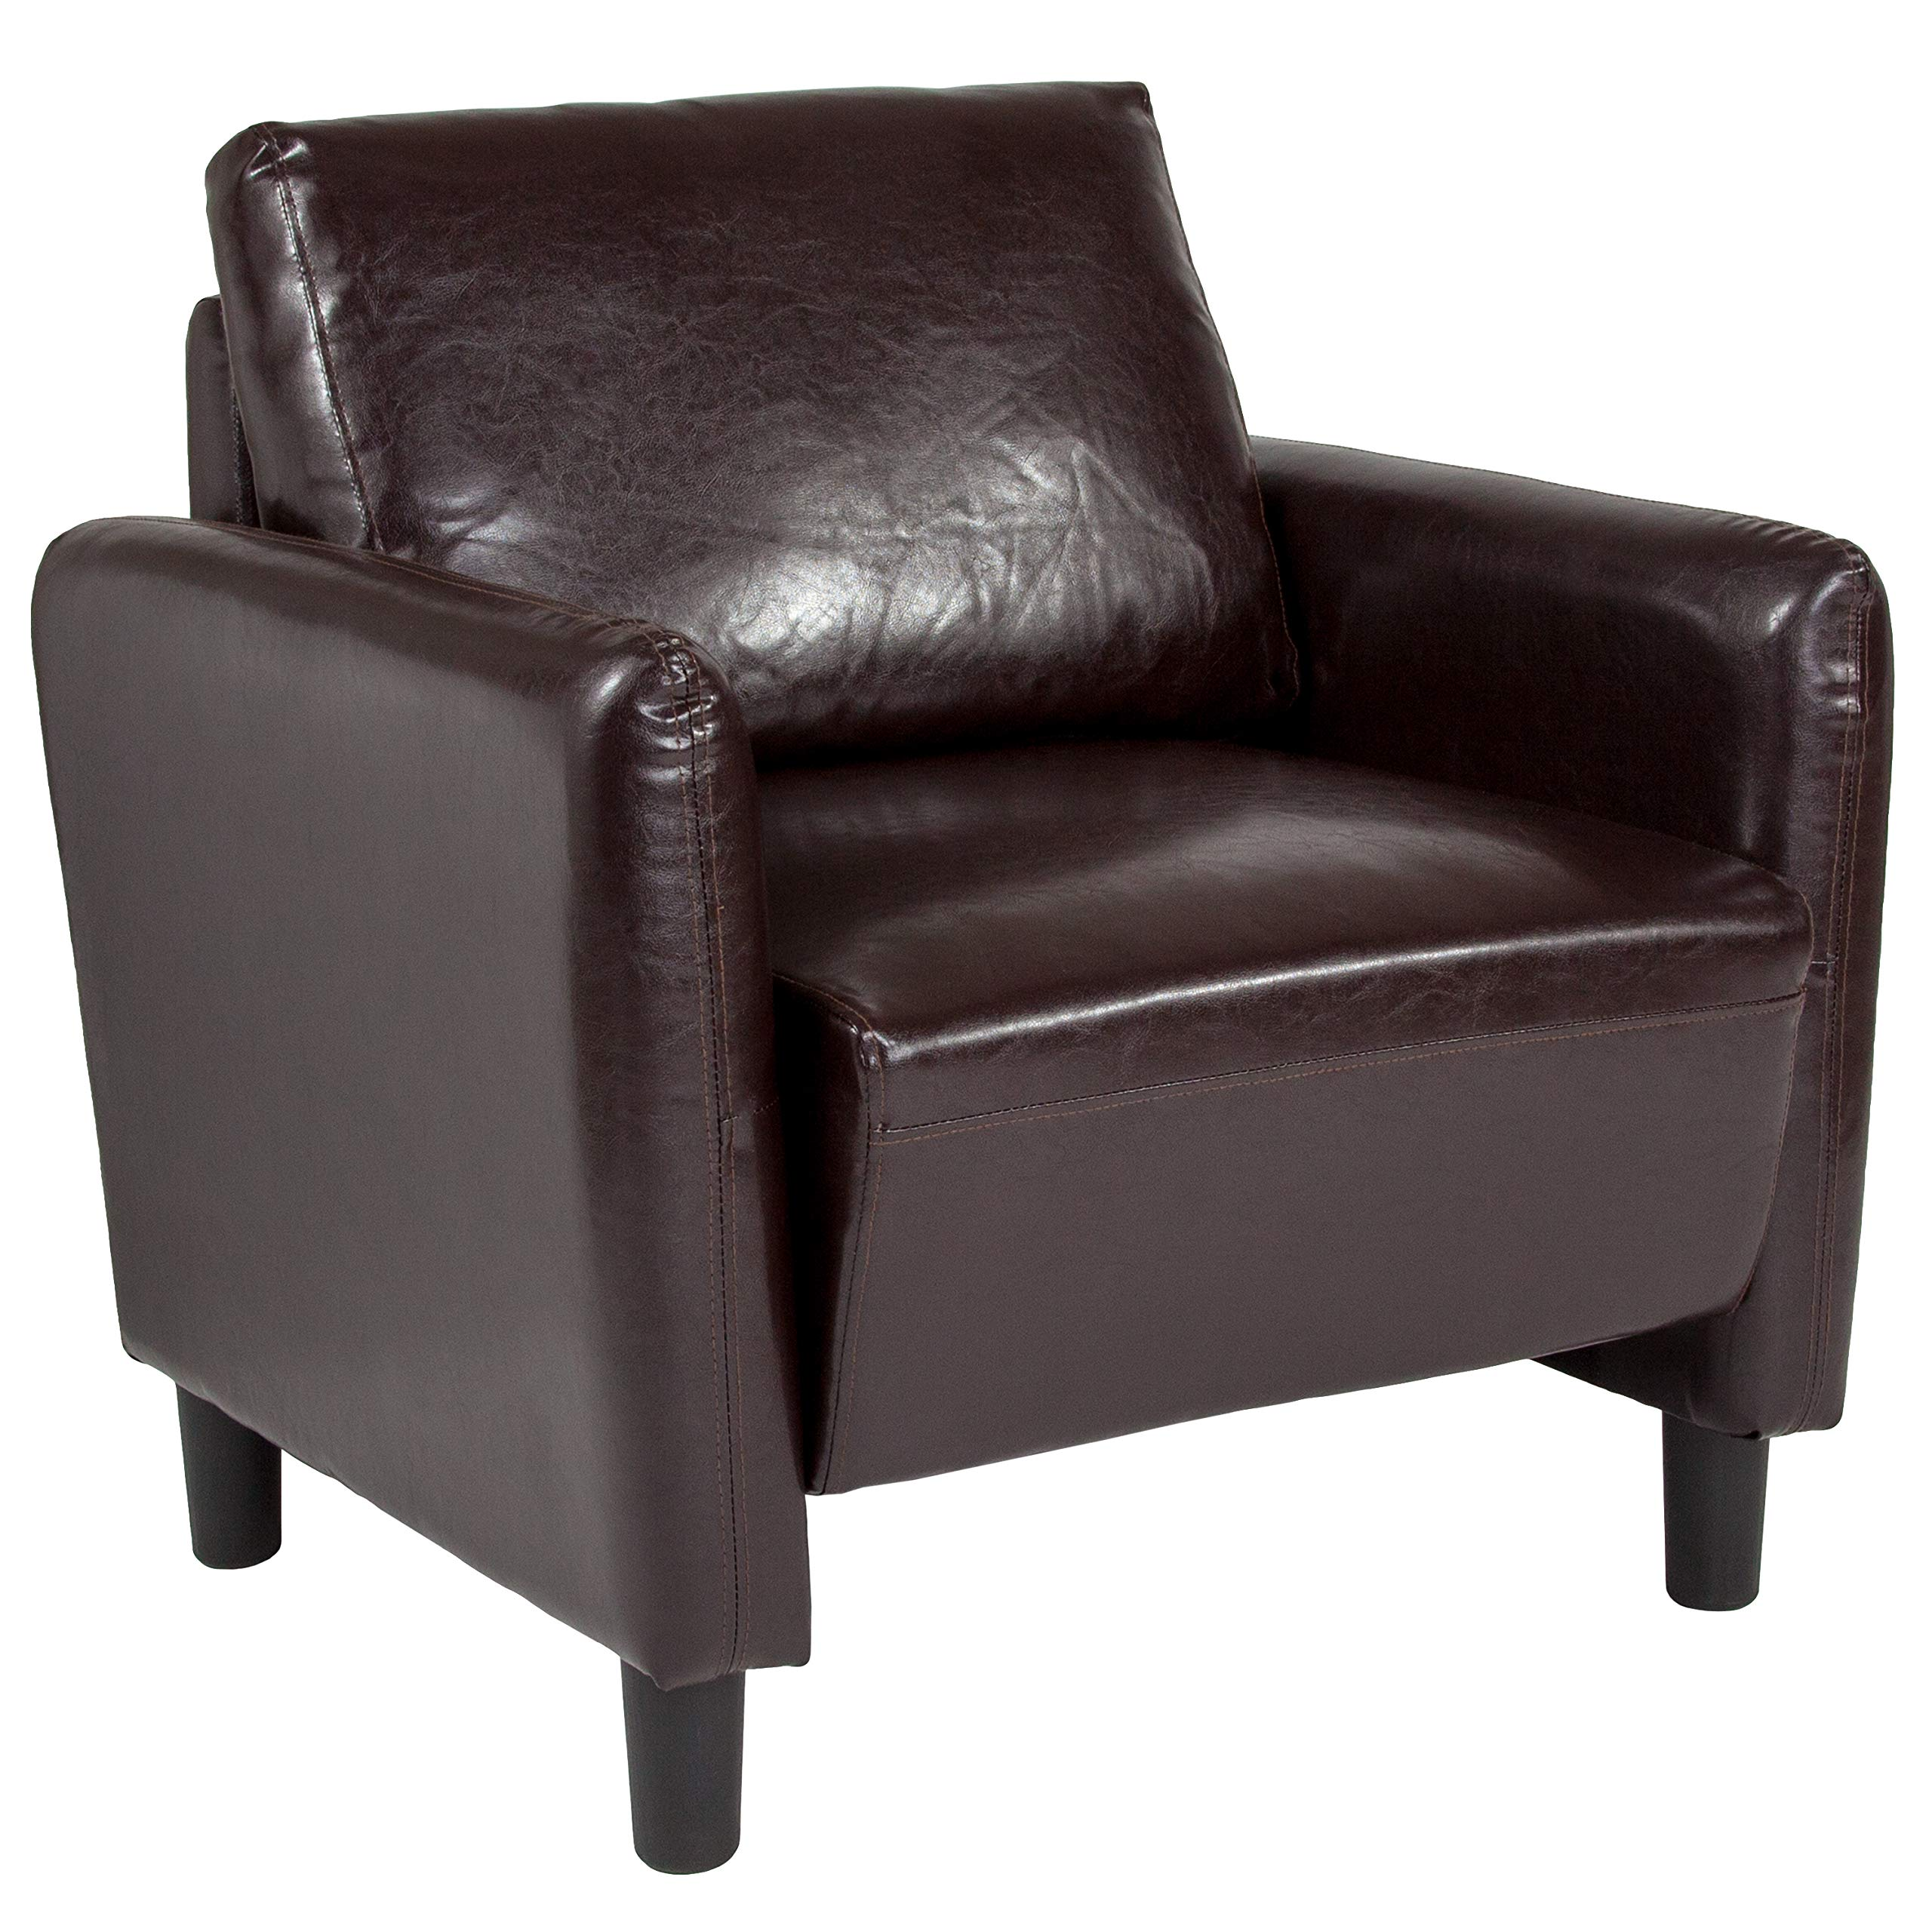 Taylor + Logan Upholstered Living Room Chair with Rounded Arms in Brown Leather